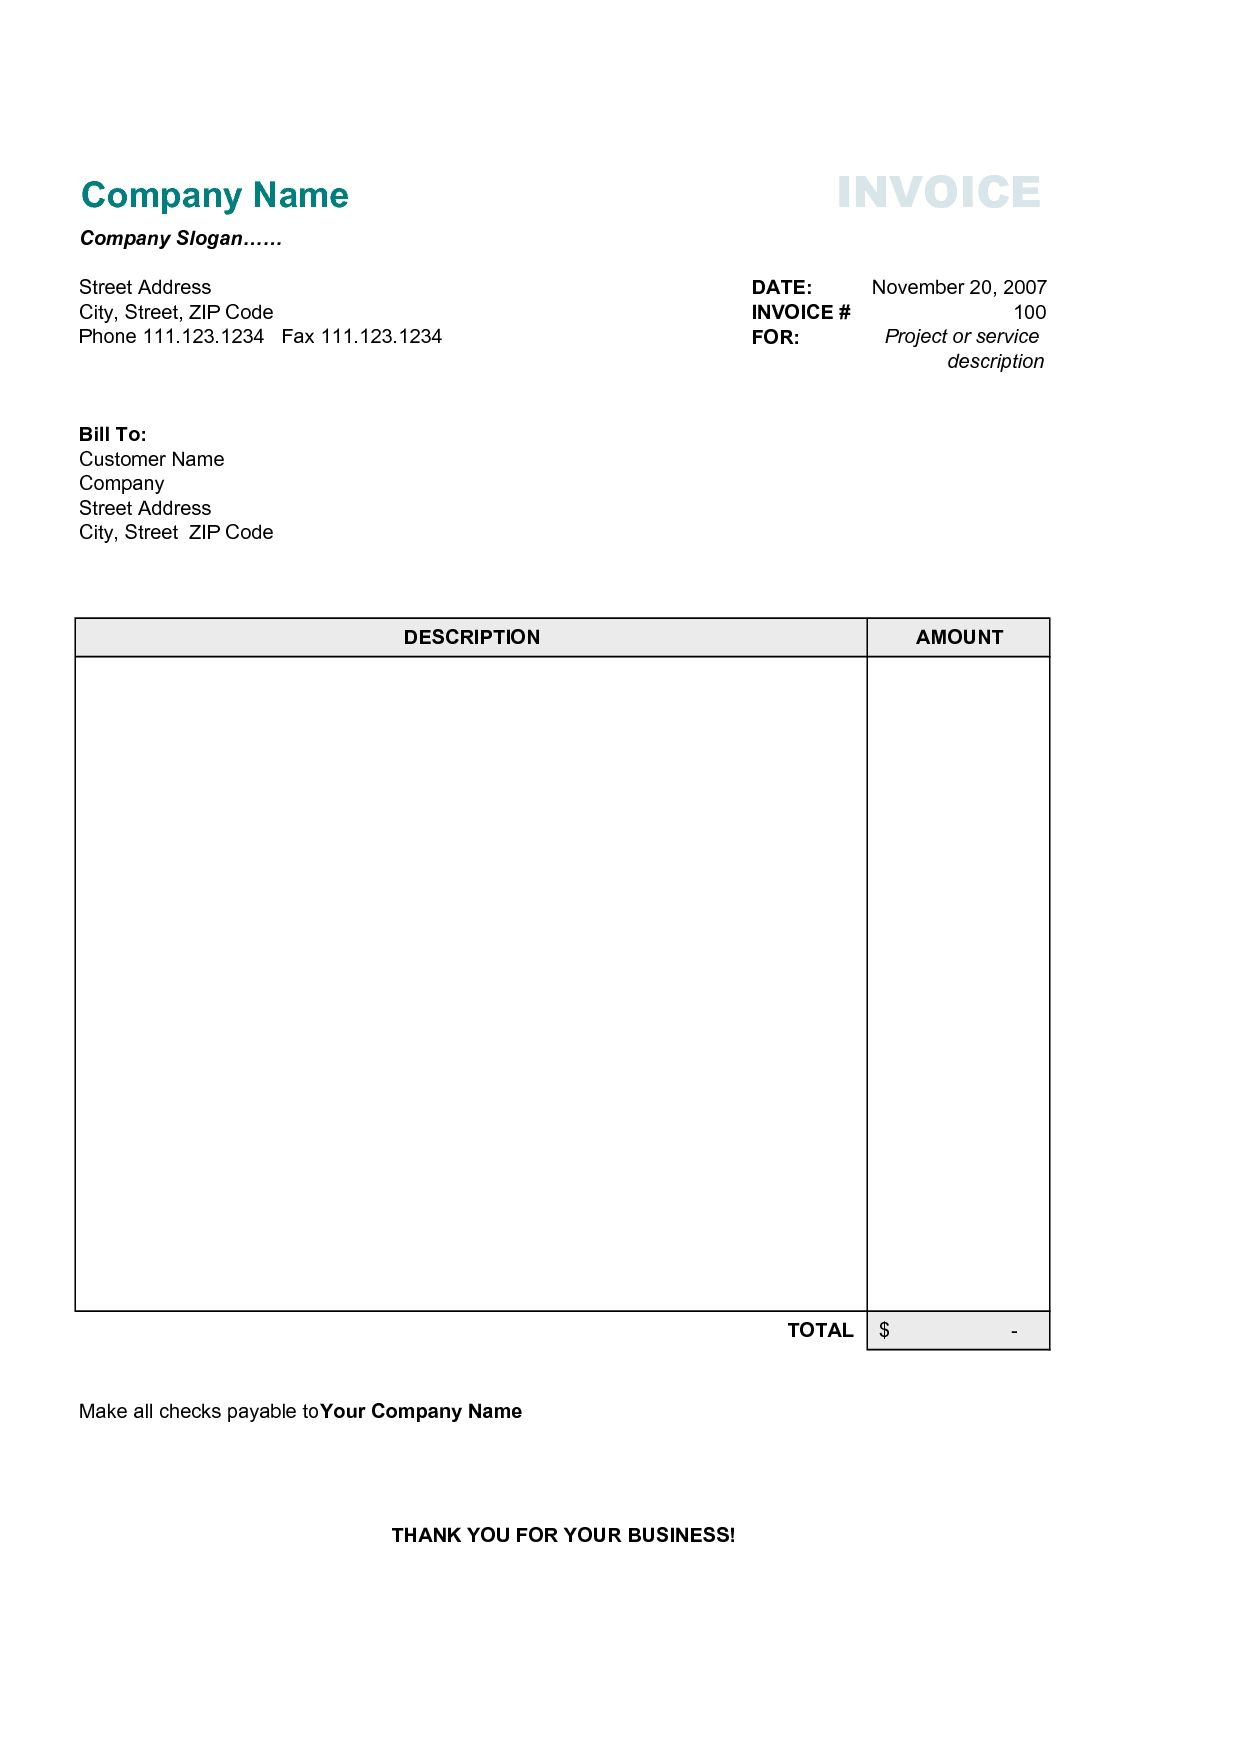 online invoices template top free invoice tools for small receipts templates rental slip format best free home design idea inspiration - Online Invoice Templates